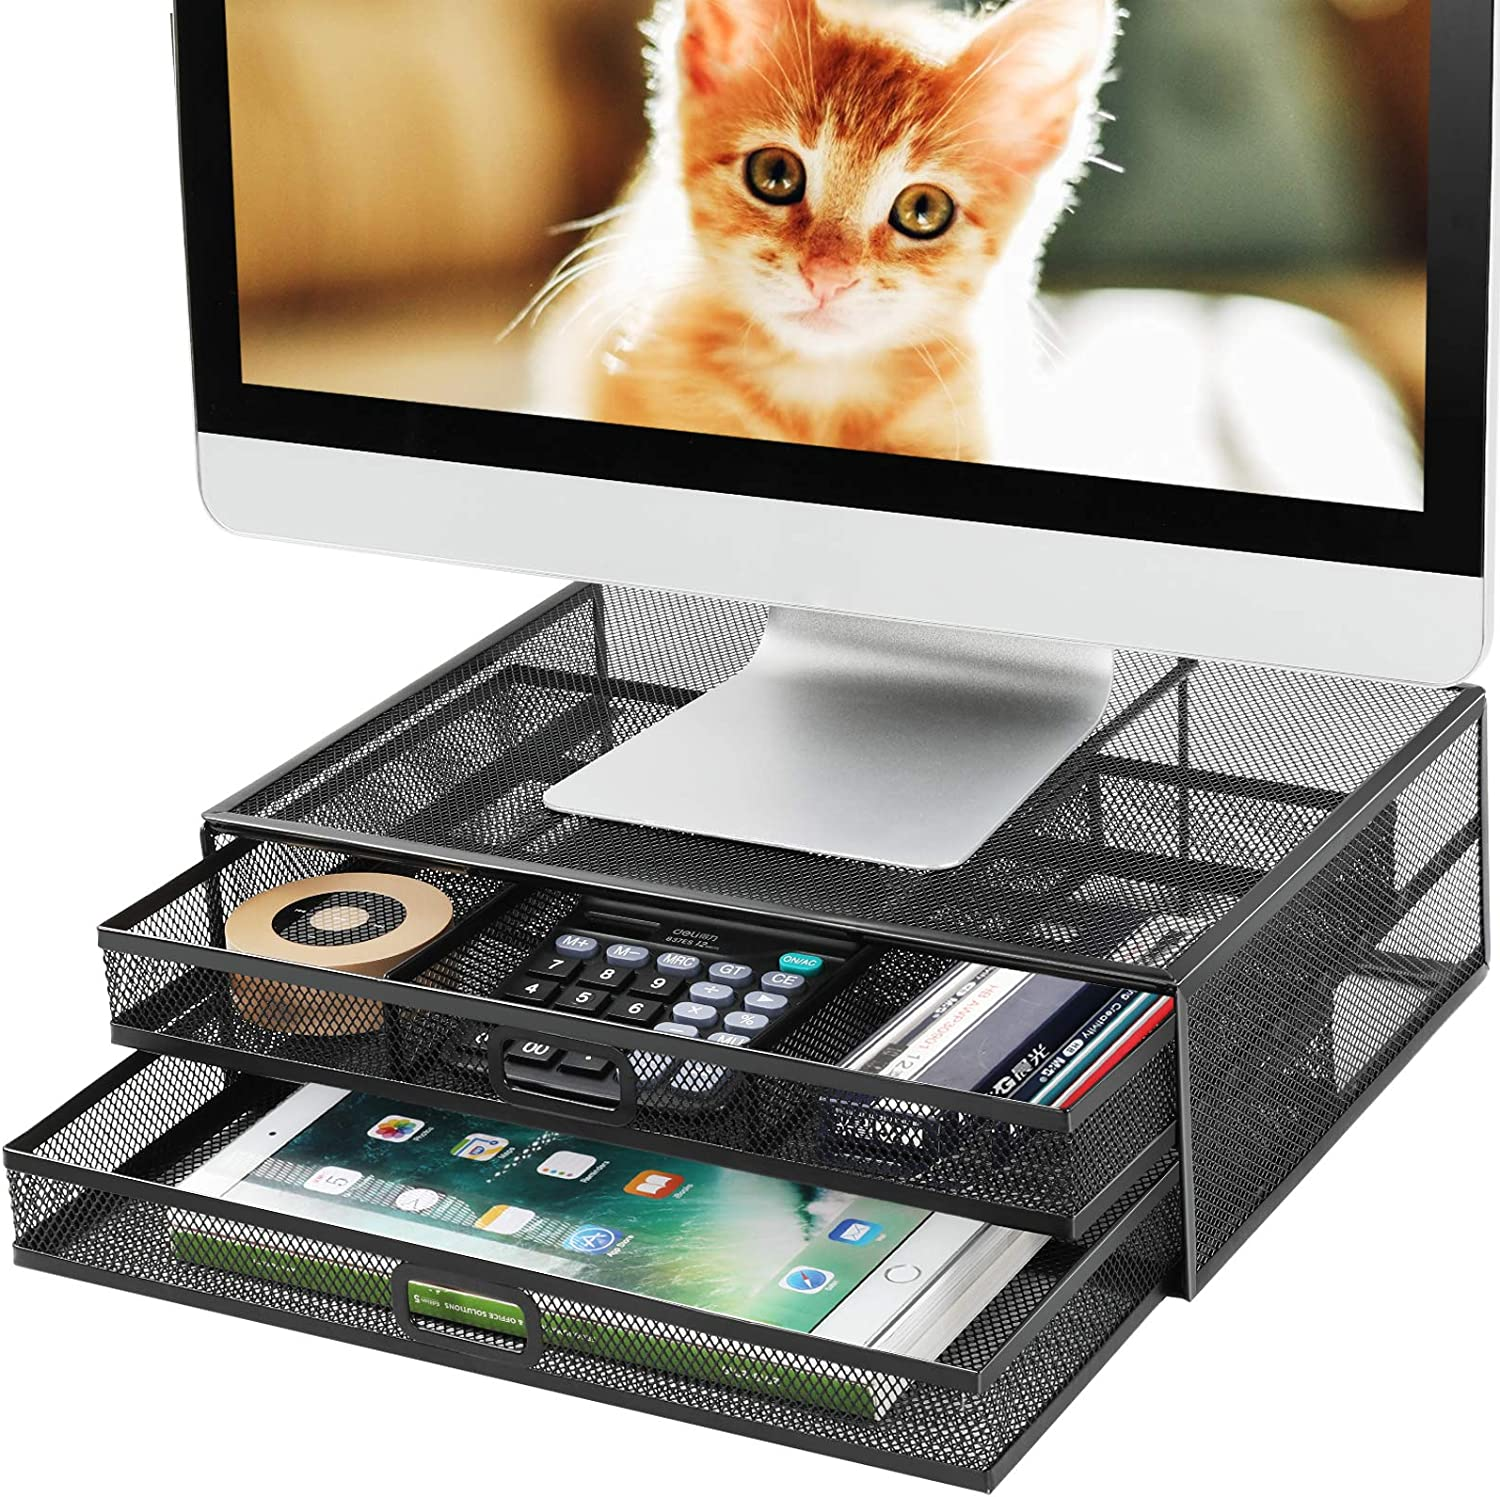 Irongear Monitor Stand Riser with Drawer - Mesh Metal Desk Organizer Storage,Office Supply for Computer, PC, Laptop, Printer, Notebook, iMac,Holds 33lbs Screen Holder (Black)